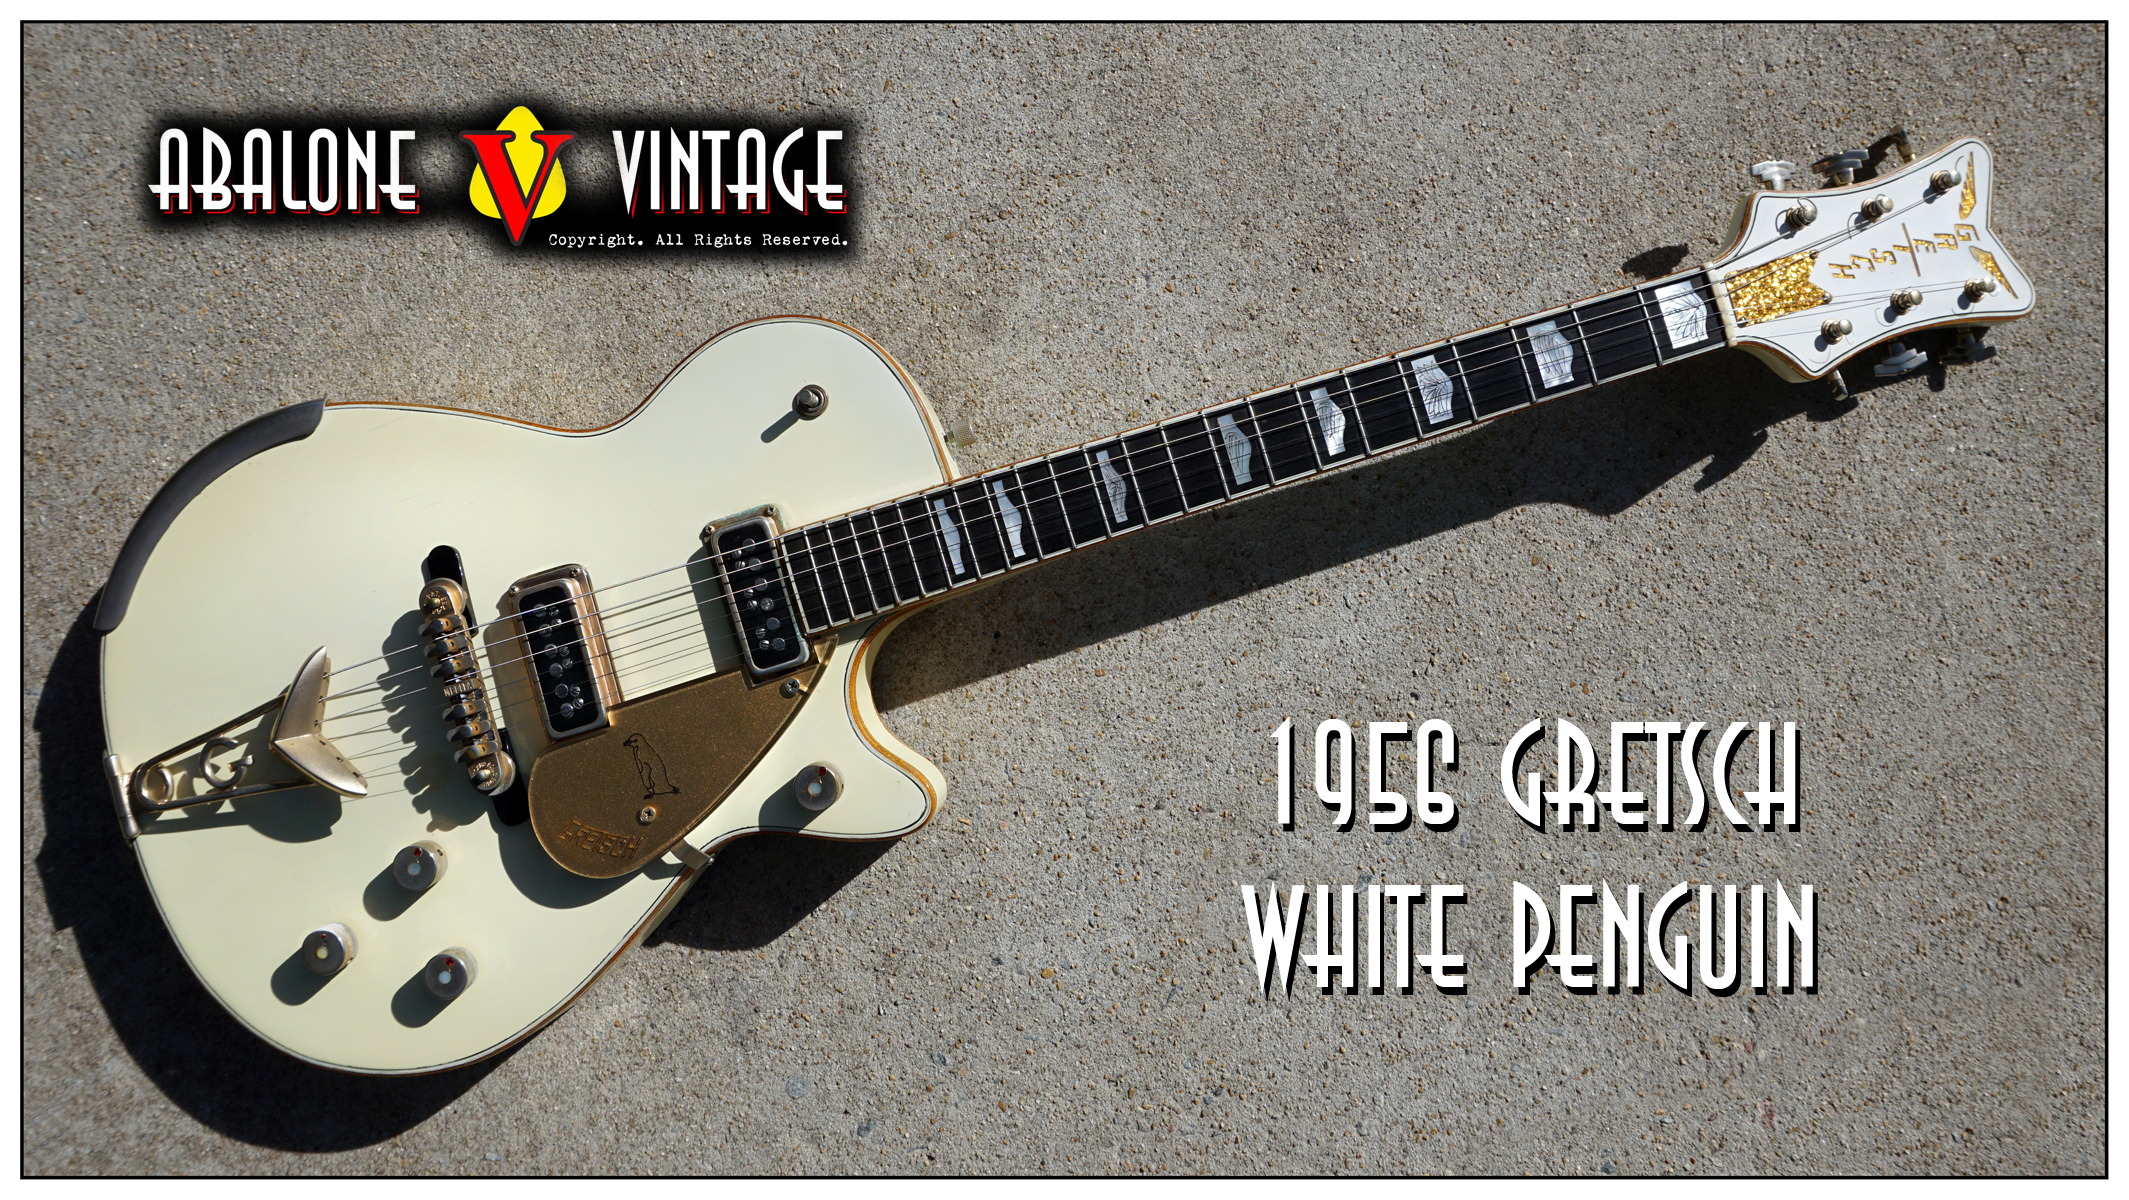 1956 Gretsch White Penguin Guitar Original Vintage Mr Clean